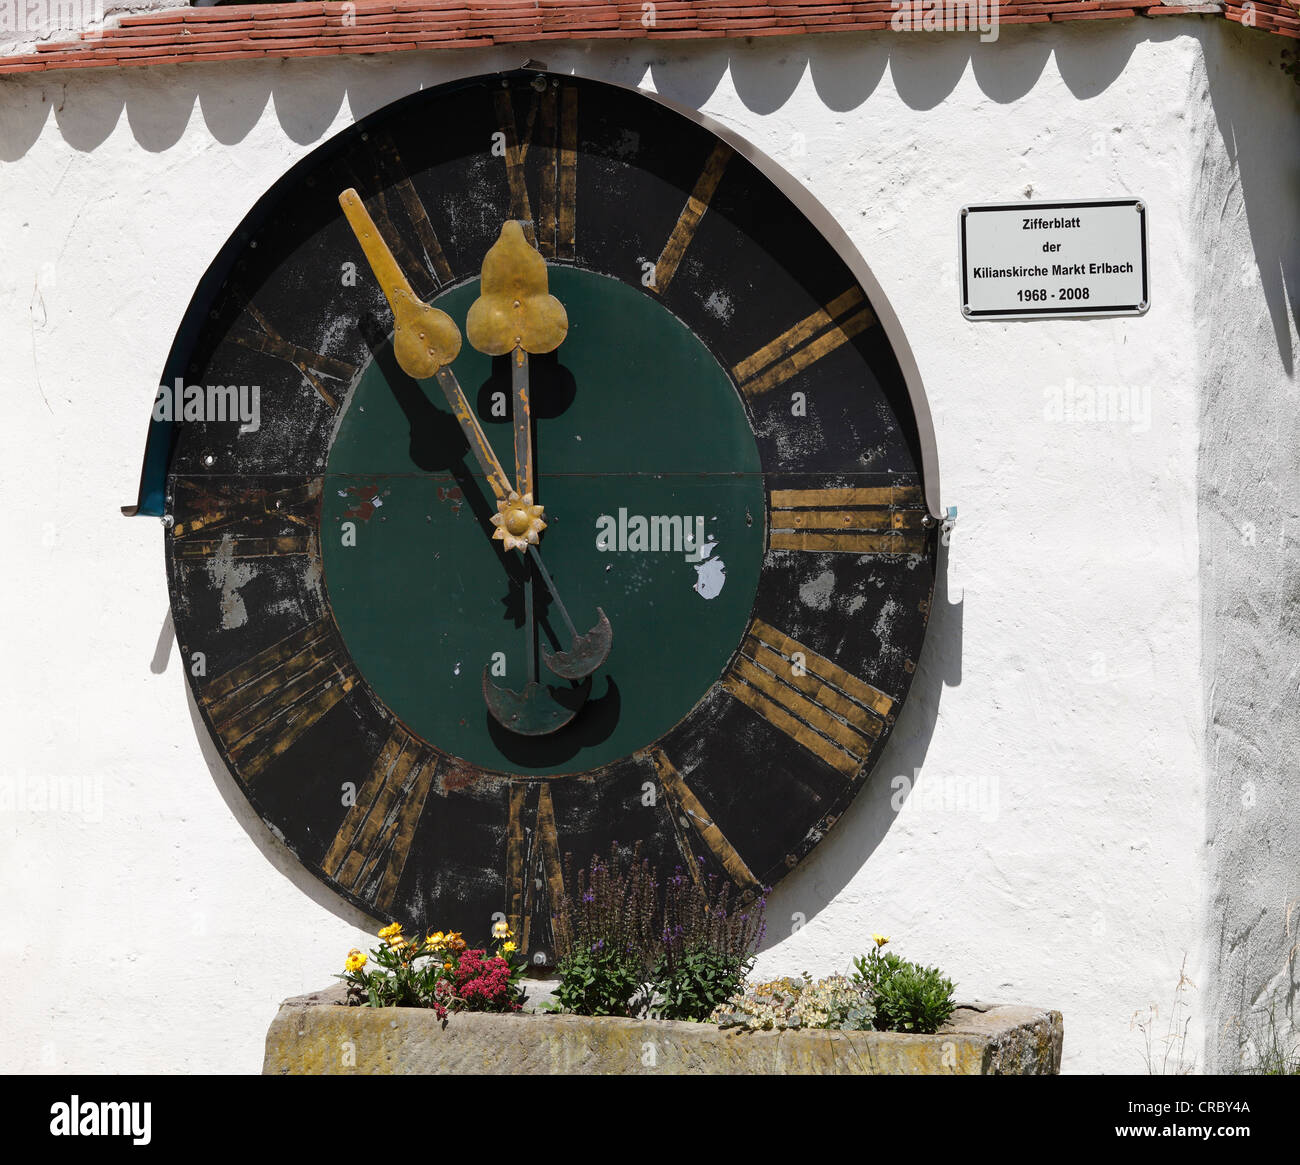 Dial of the clock from a church tower, Rangau Craftsman Museum, Markt Erlbach, Middle Franconia, Franconia, Bavaria - Stock Image